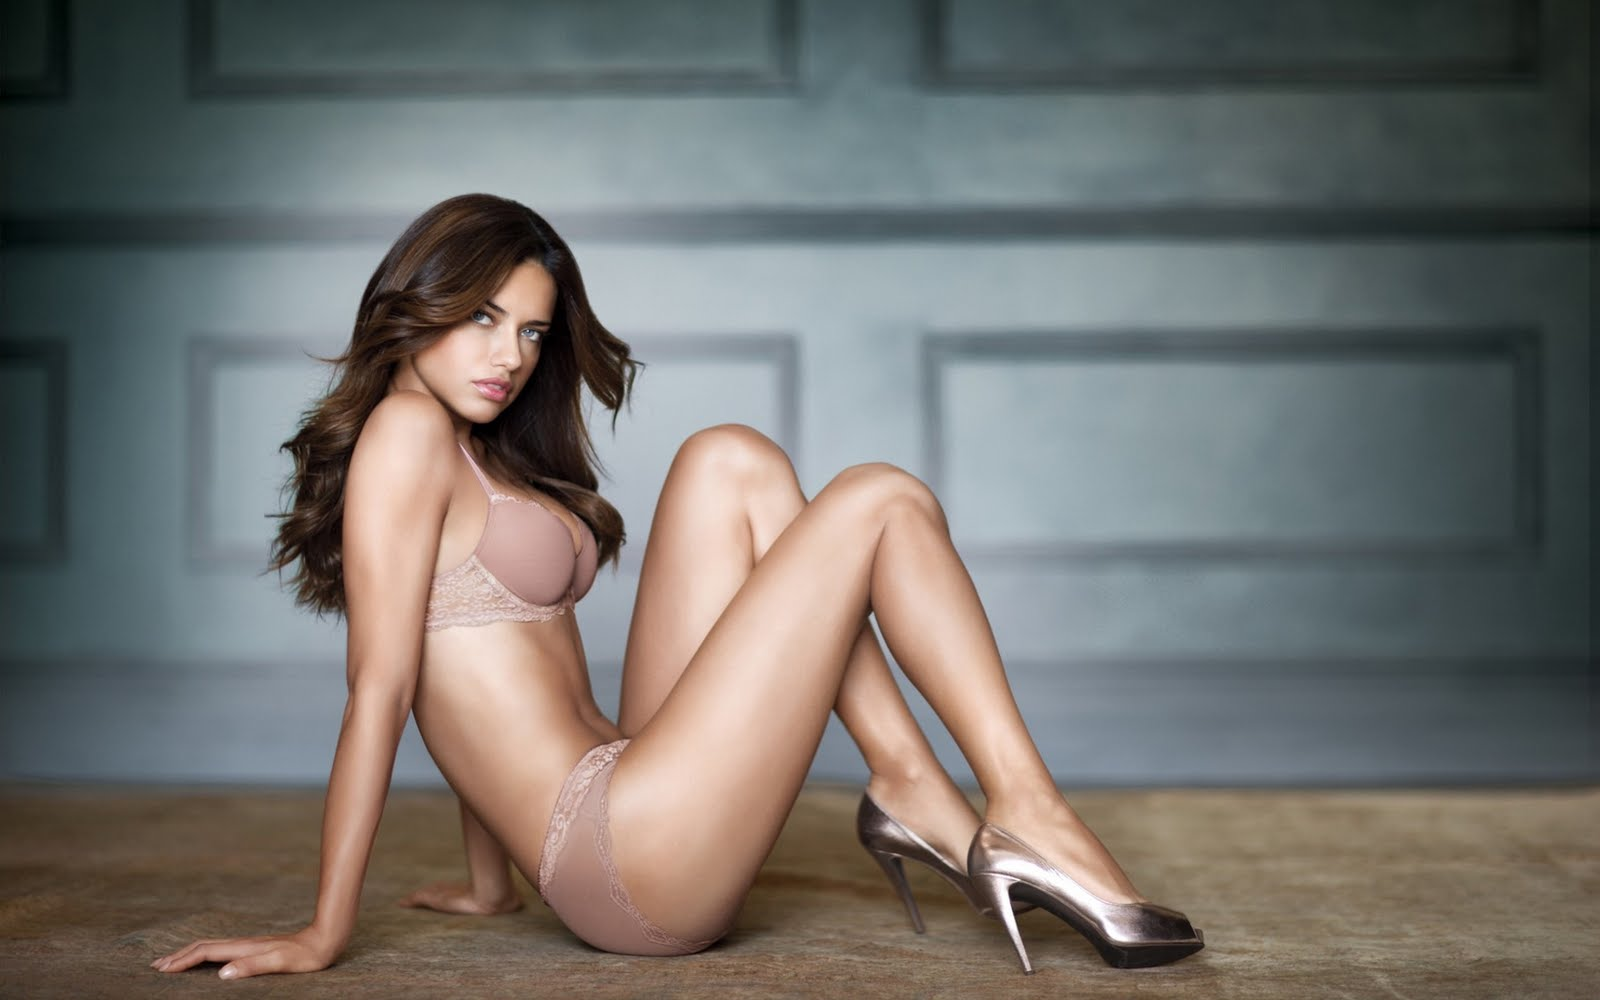 Images Of Top Models And Actresses Wallpapers De Adriana Lima